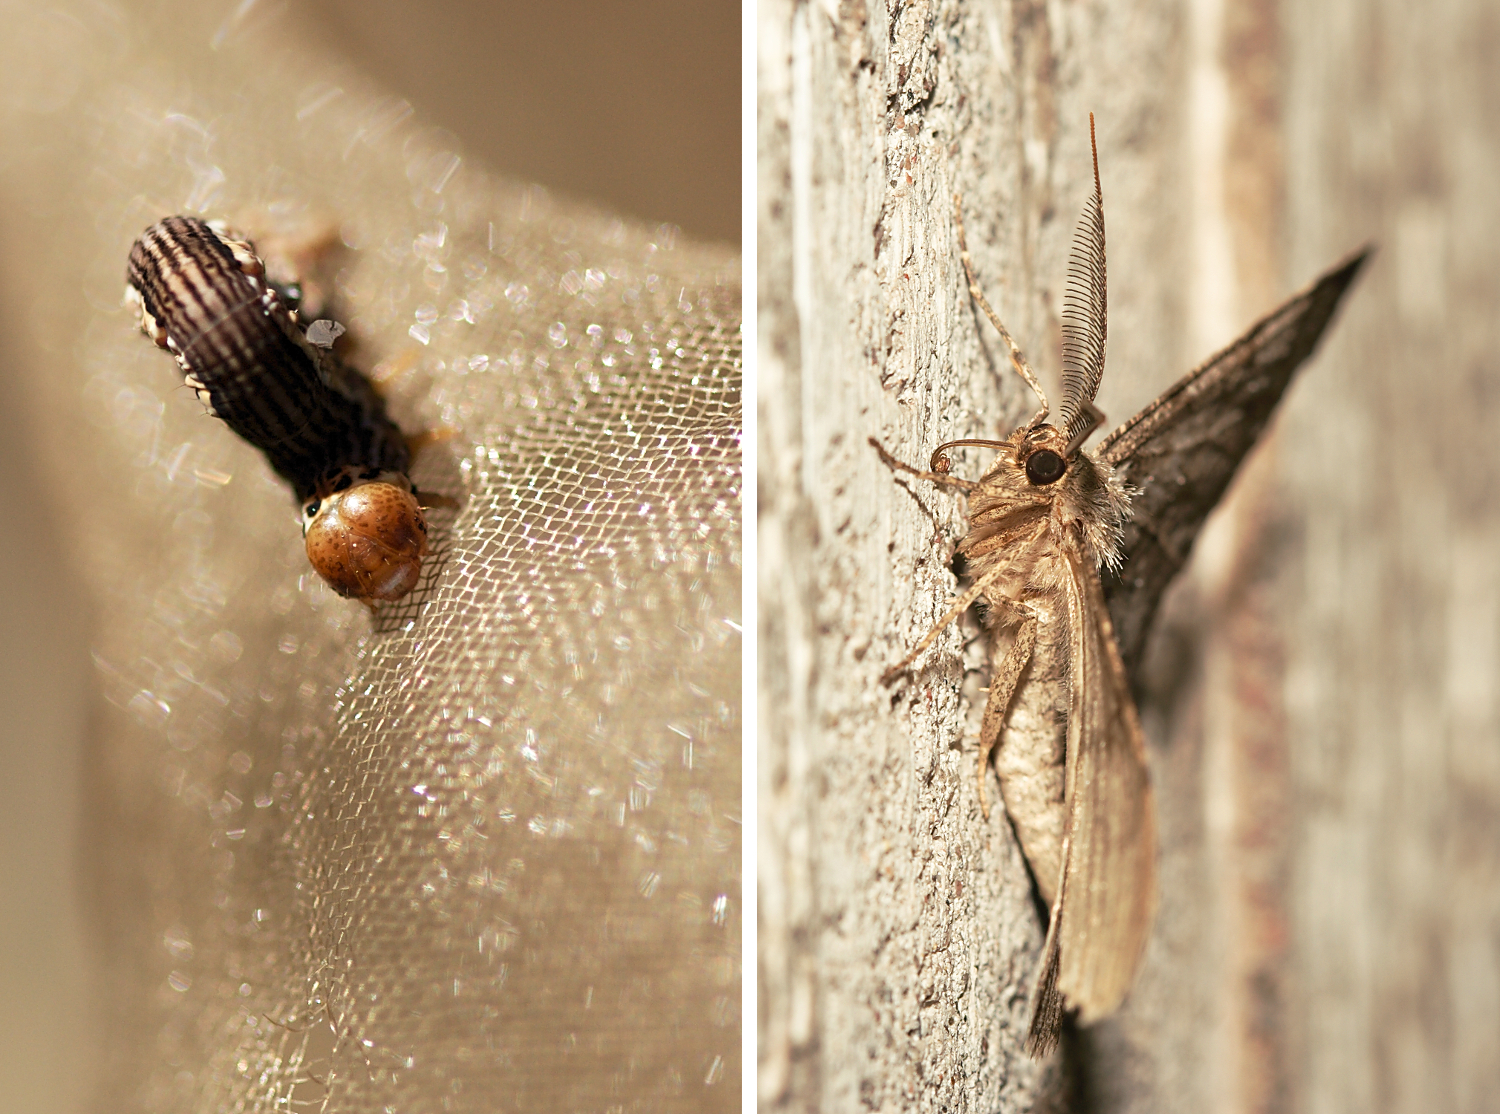 Larva on net and moth. Insect Photography Tips